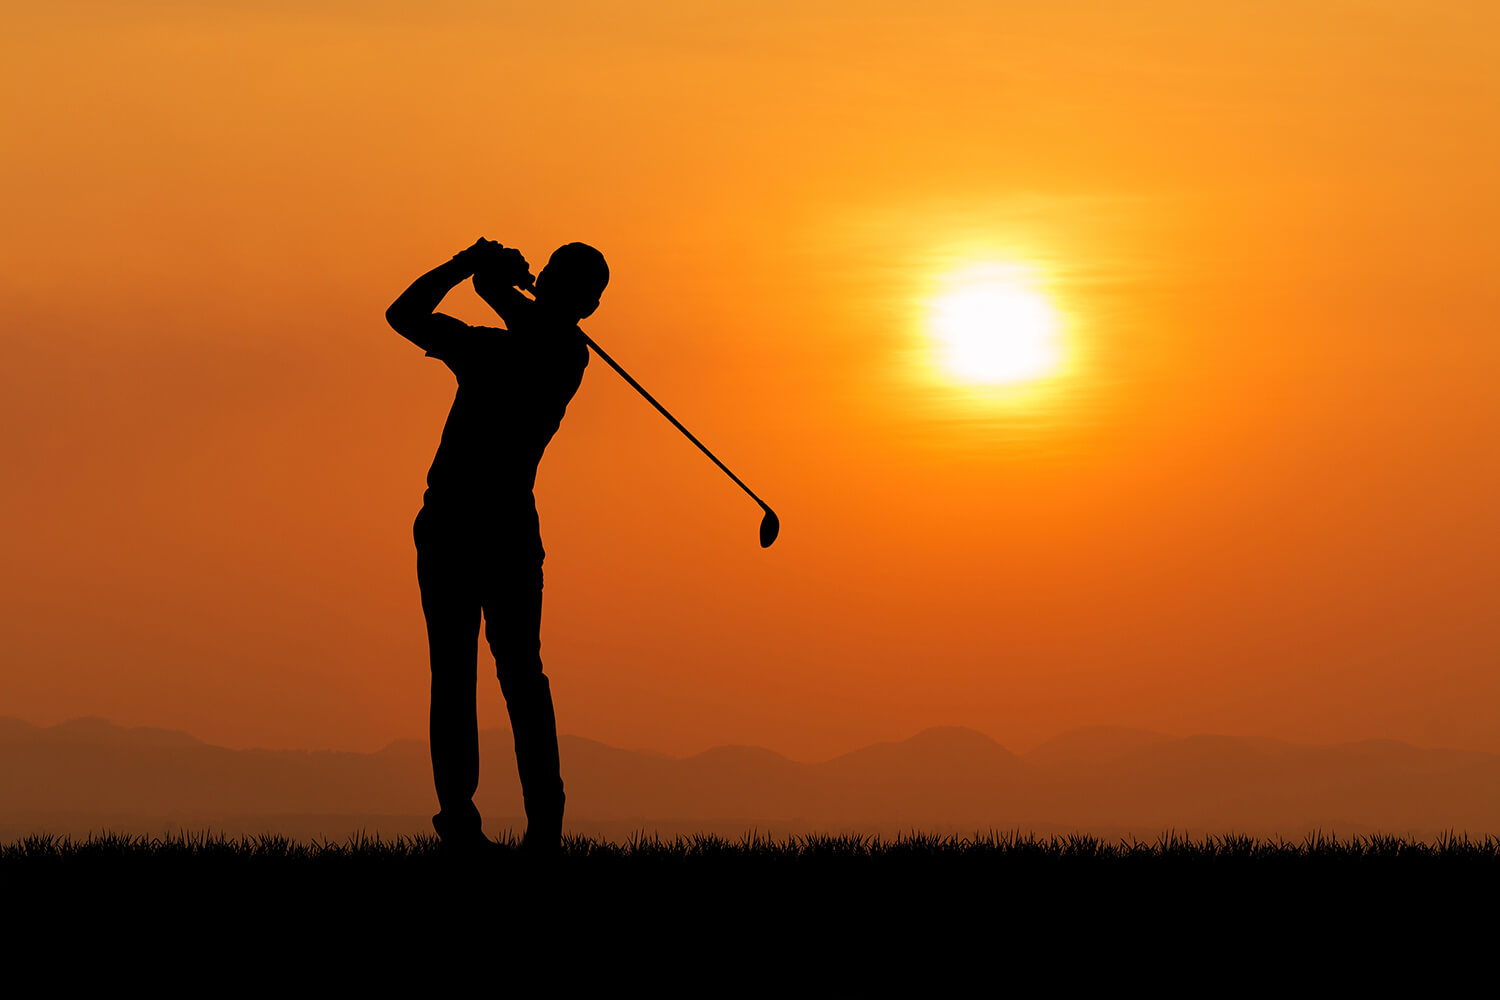 A man swings his golf club into distance